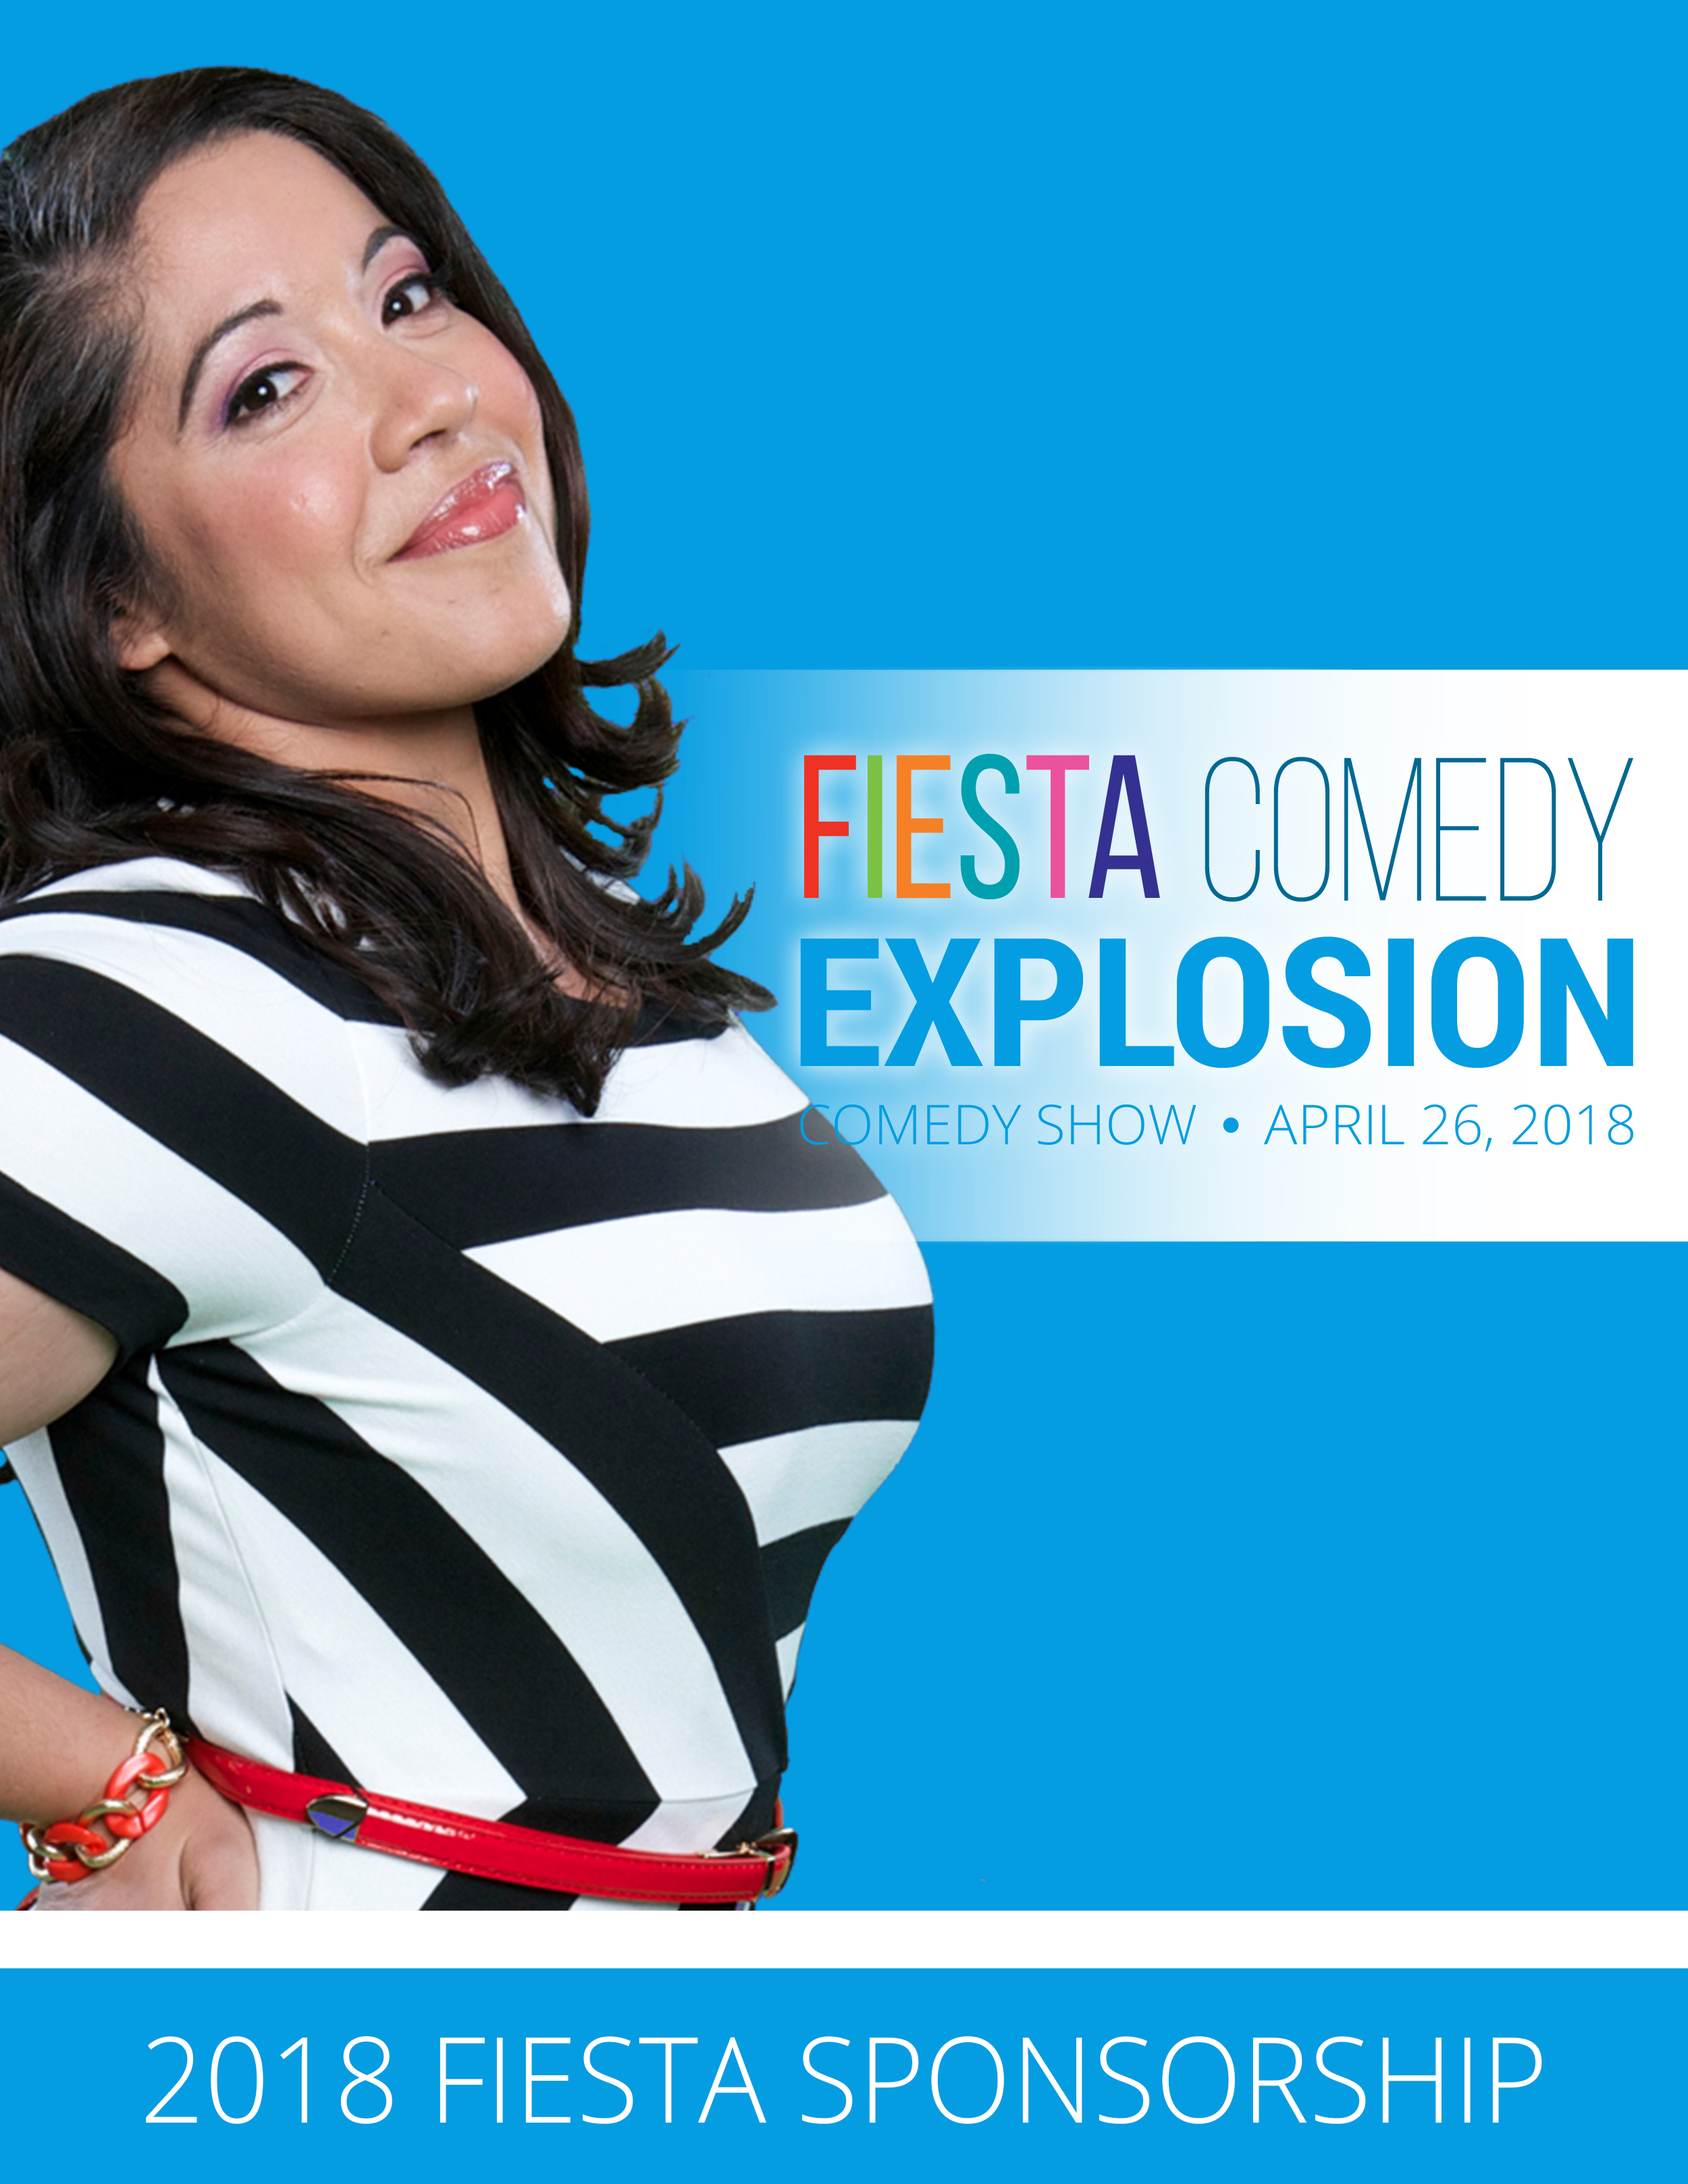 Fiesta Sponsorship | Fiesta Comedy Explosion 2018 Sponsorship Package | Fiesta San Antonio | Official Priest Holmes Foundation Website | Priest Holmes Son | Priest Holmes Girlfriend | Priest Holmes Wife | Priest Holmes Engaged | Priest Holmes Family | Priest Holmes is Engaged